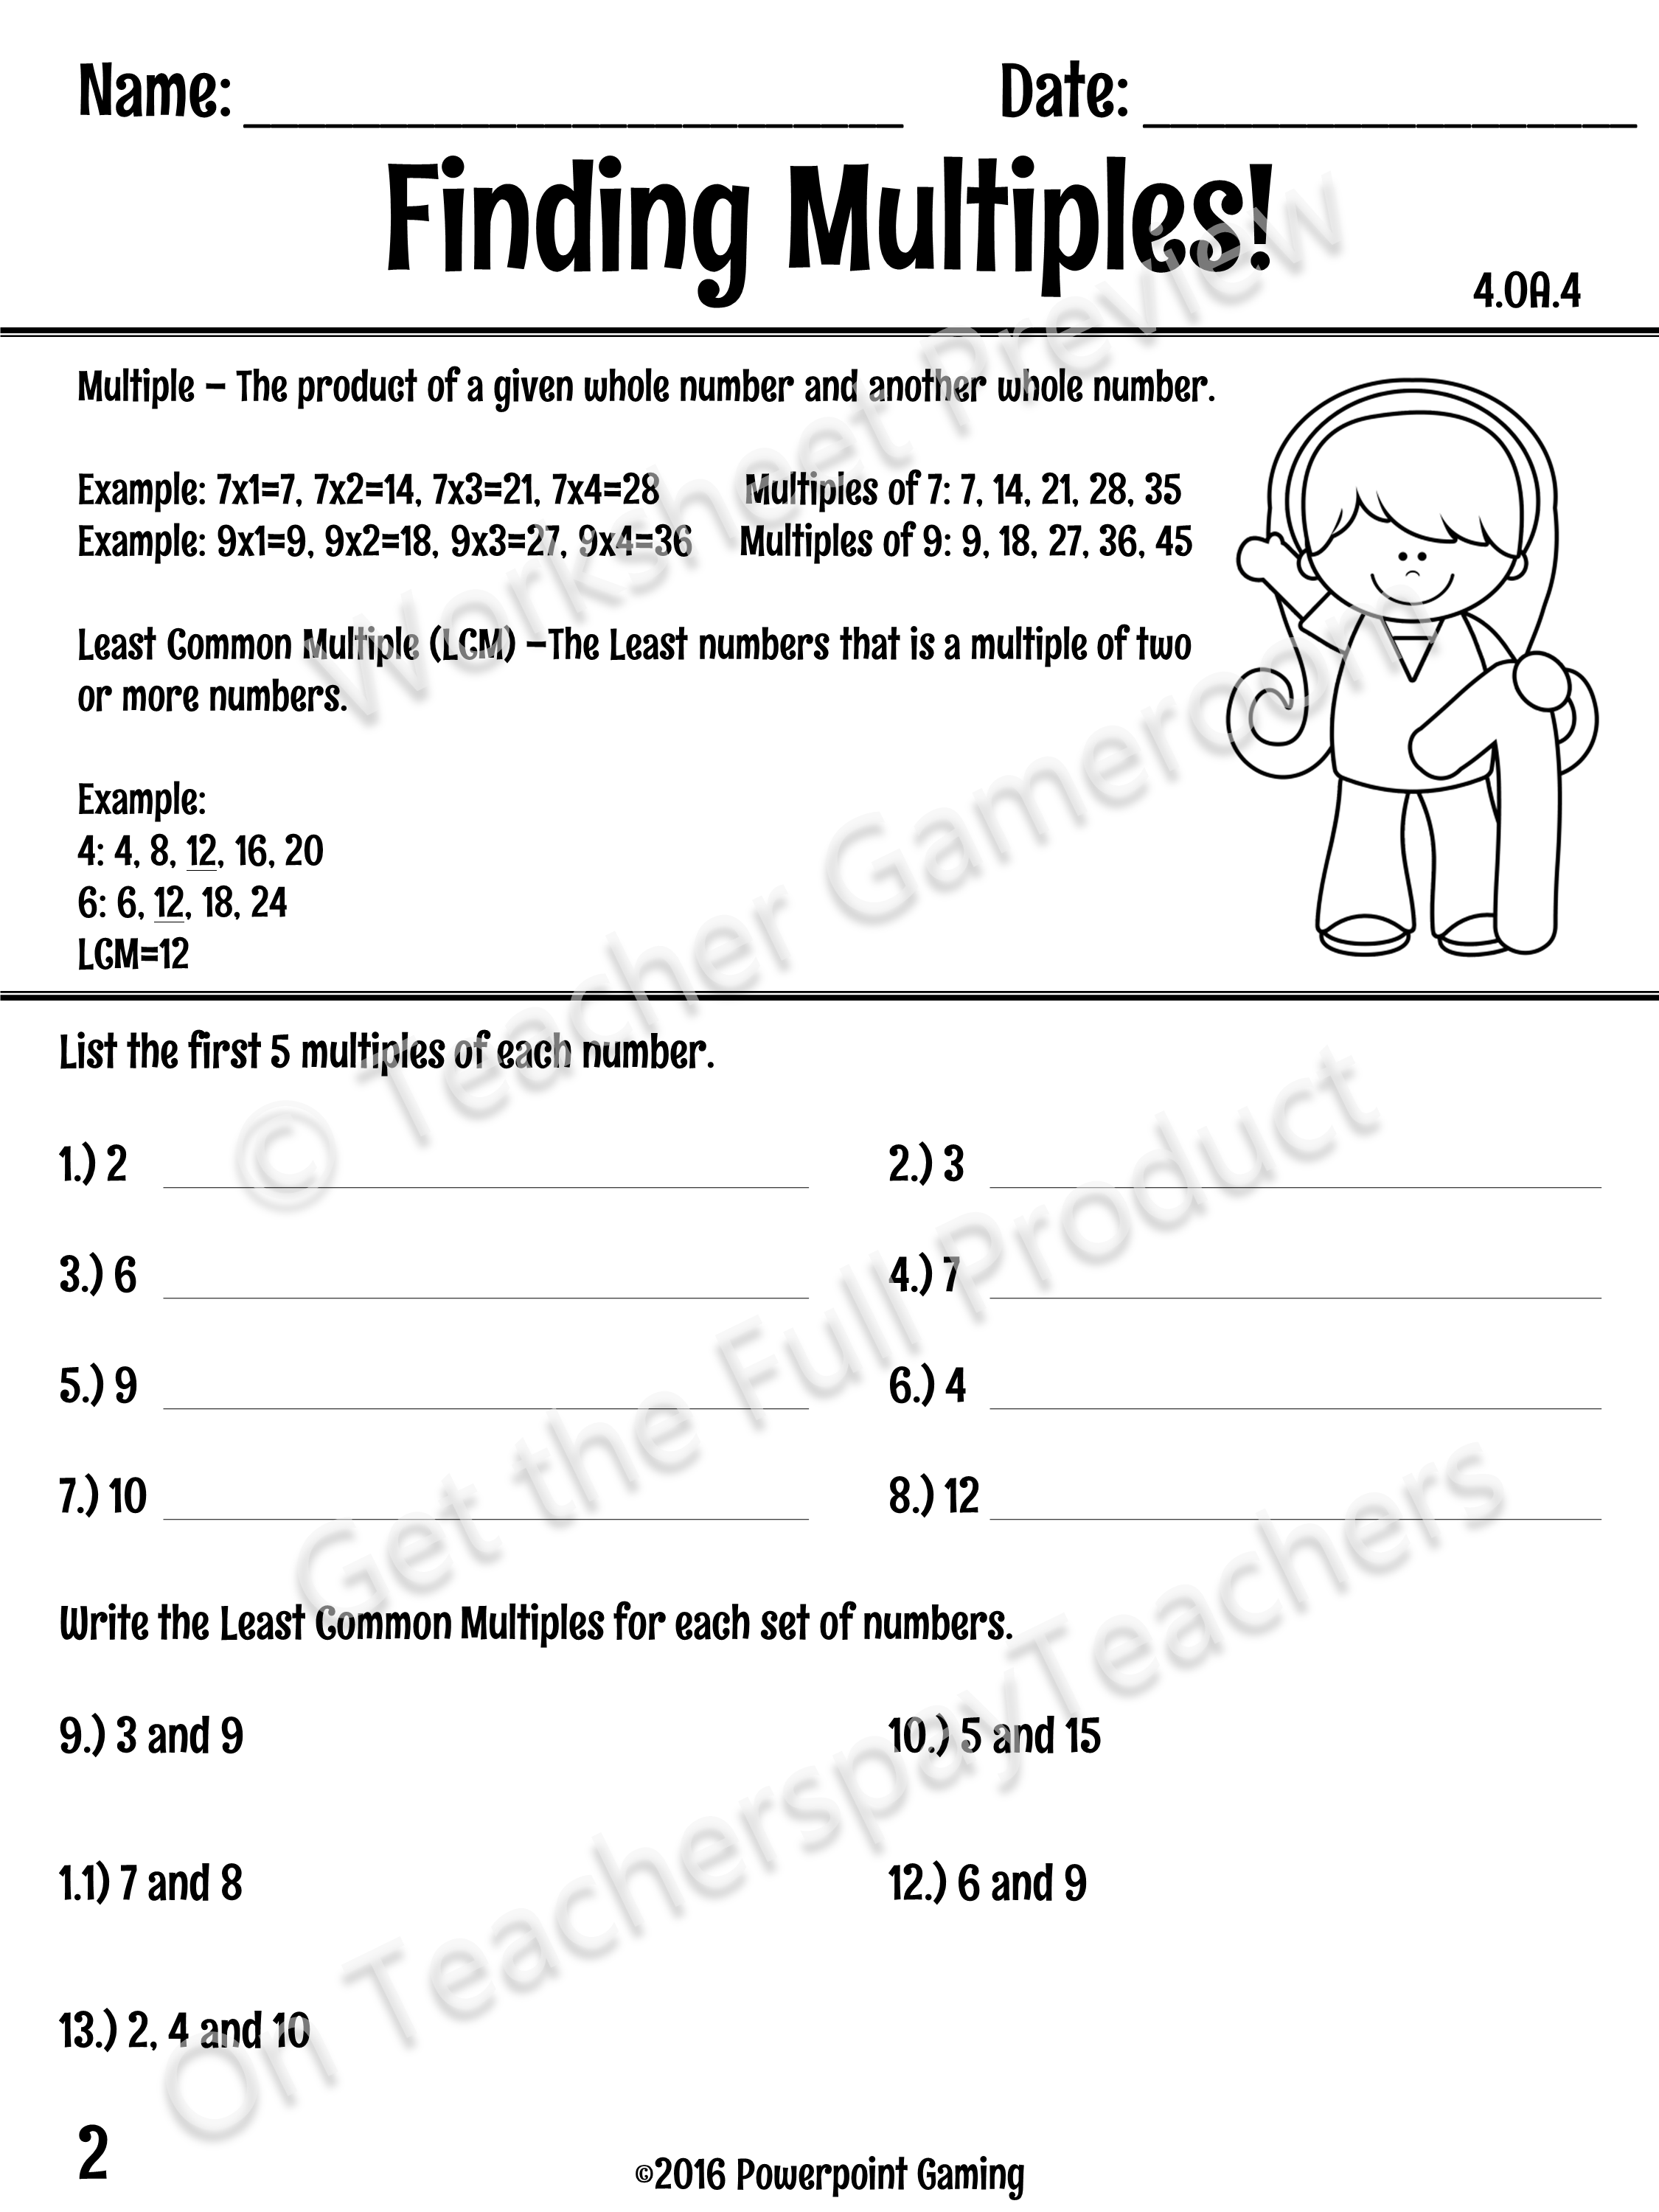 This Worksheet Teaches Students How To Find The Least Common Multiple Lcm With Notes At The